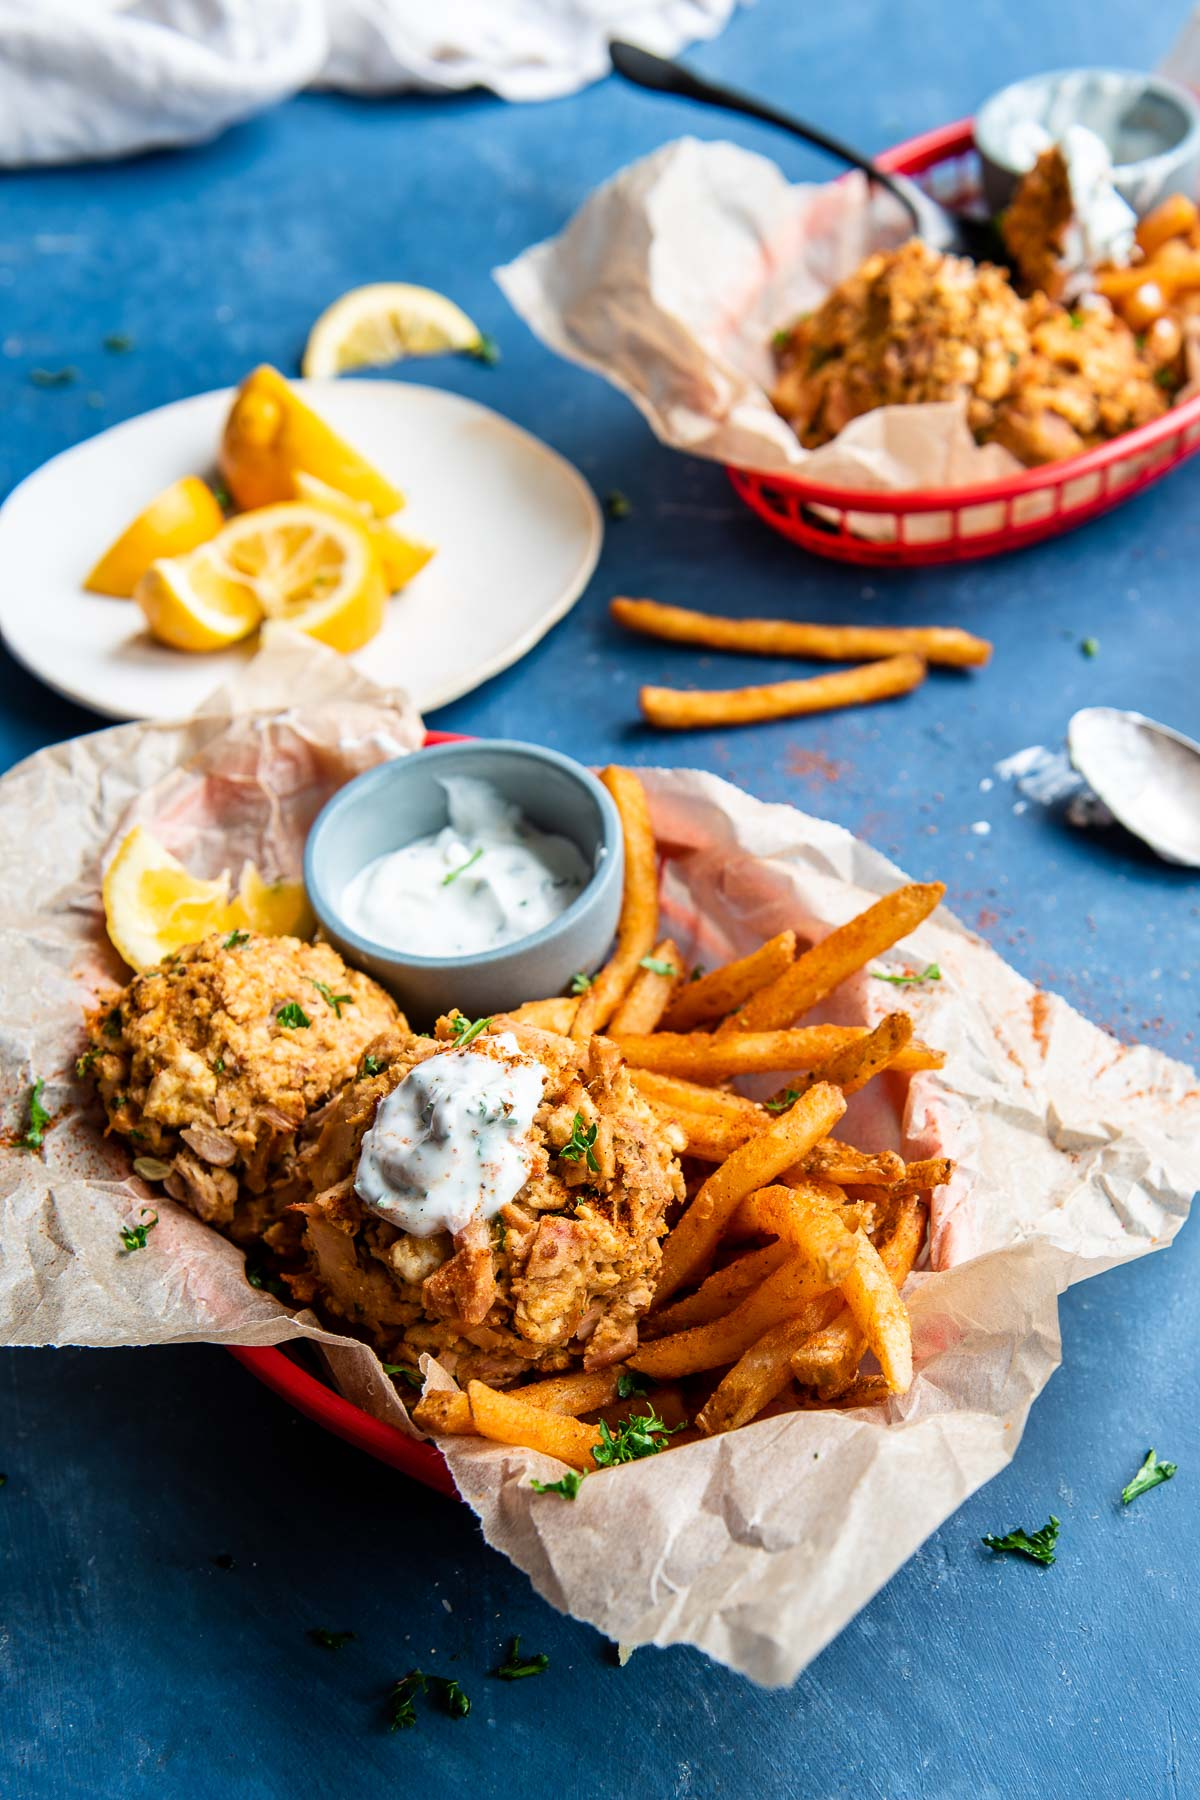 tuna cakes with fries in 2 servings